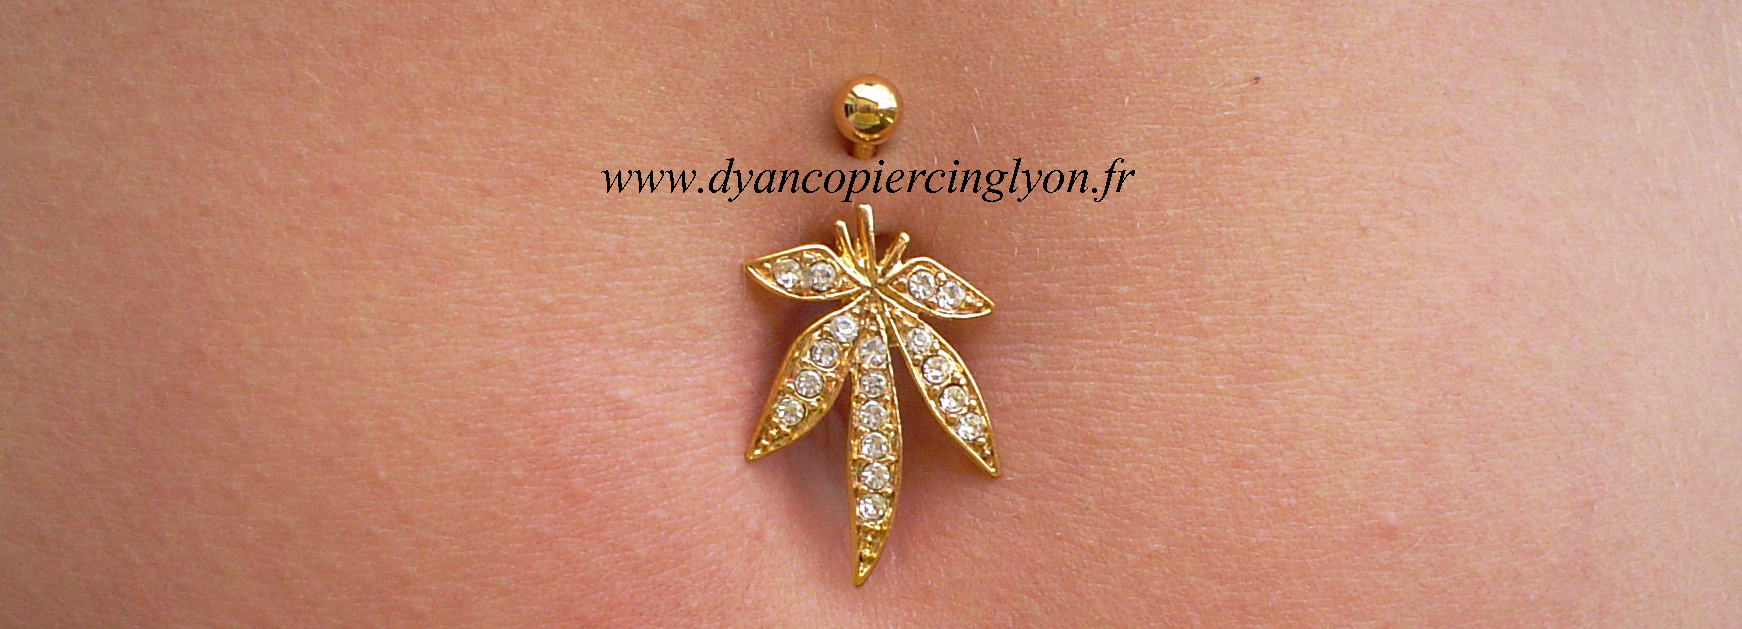 piercing_nombril_feuille_de_cannabis_anodisé_or